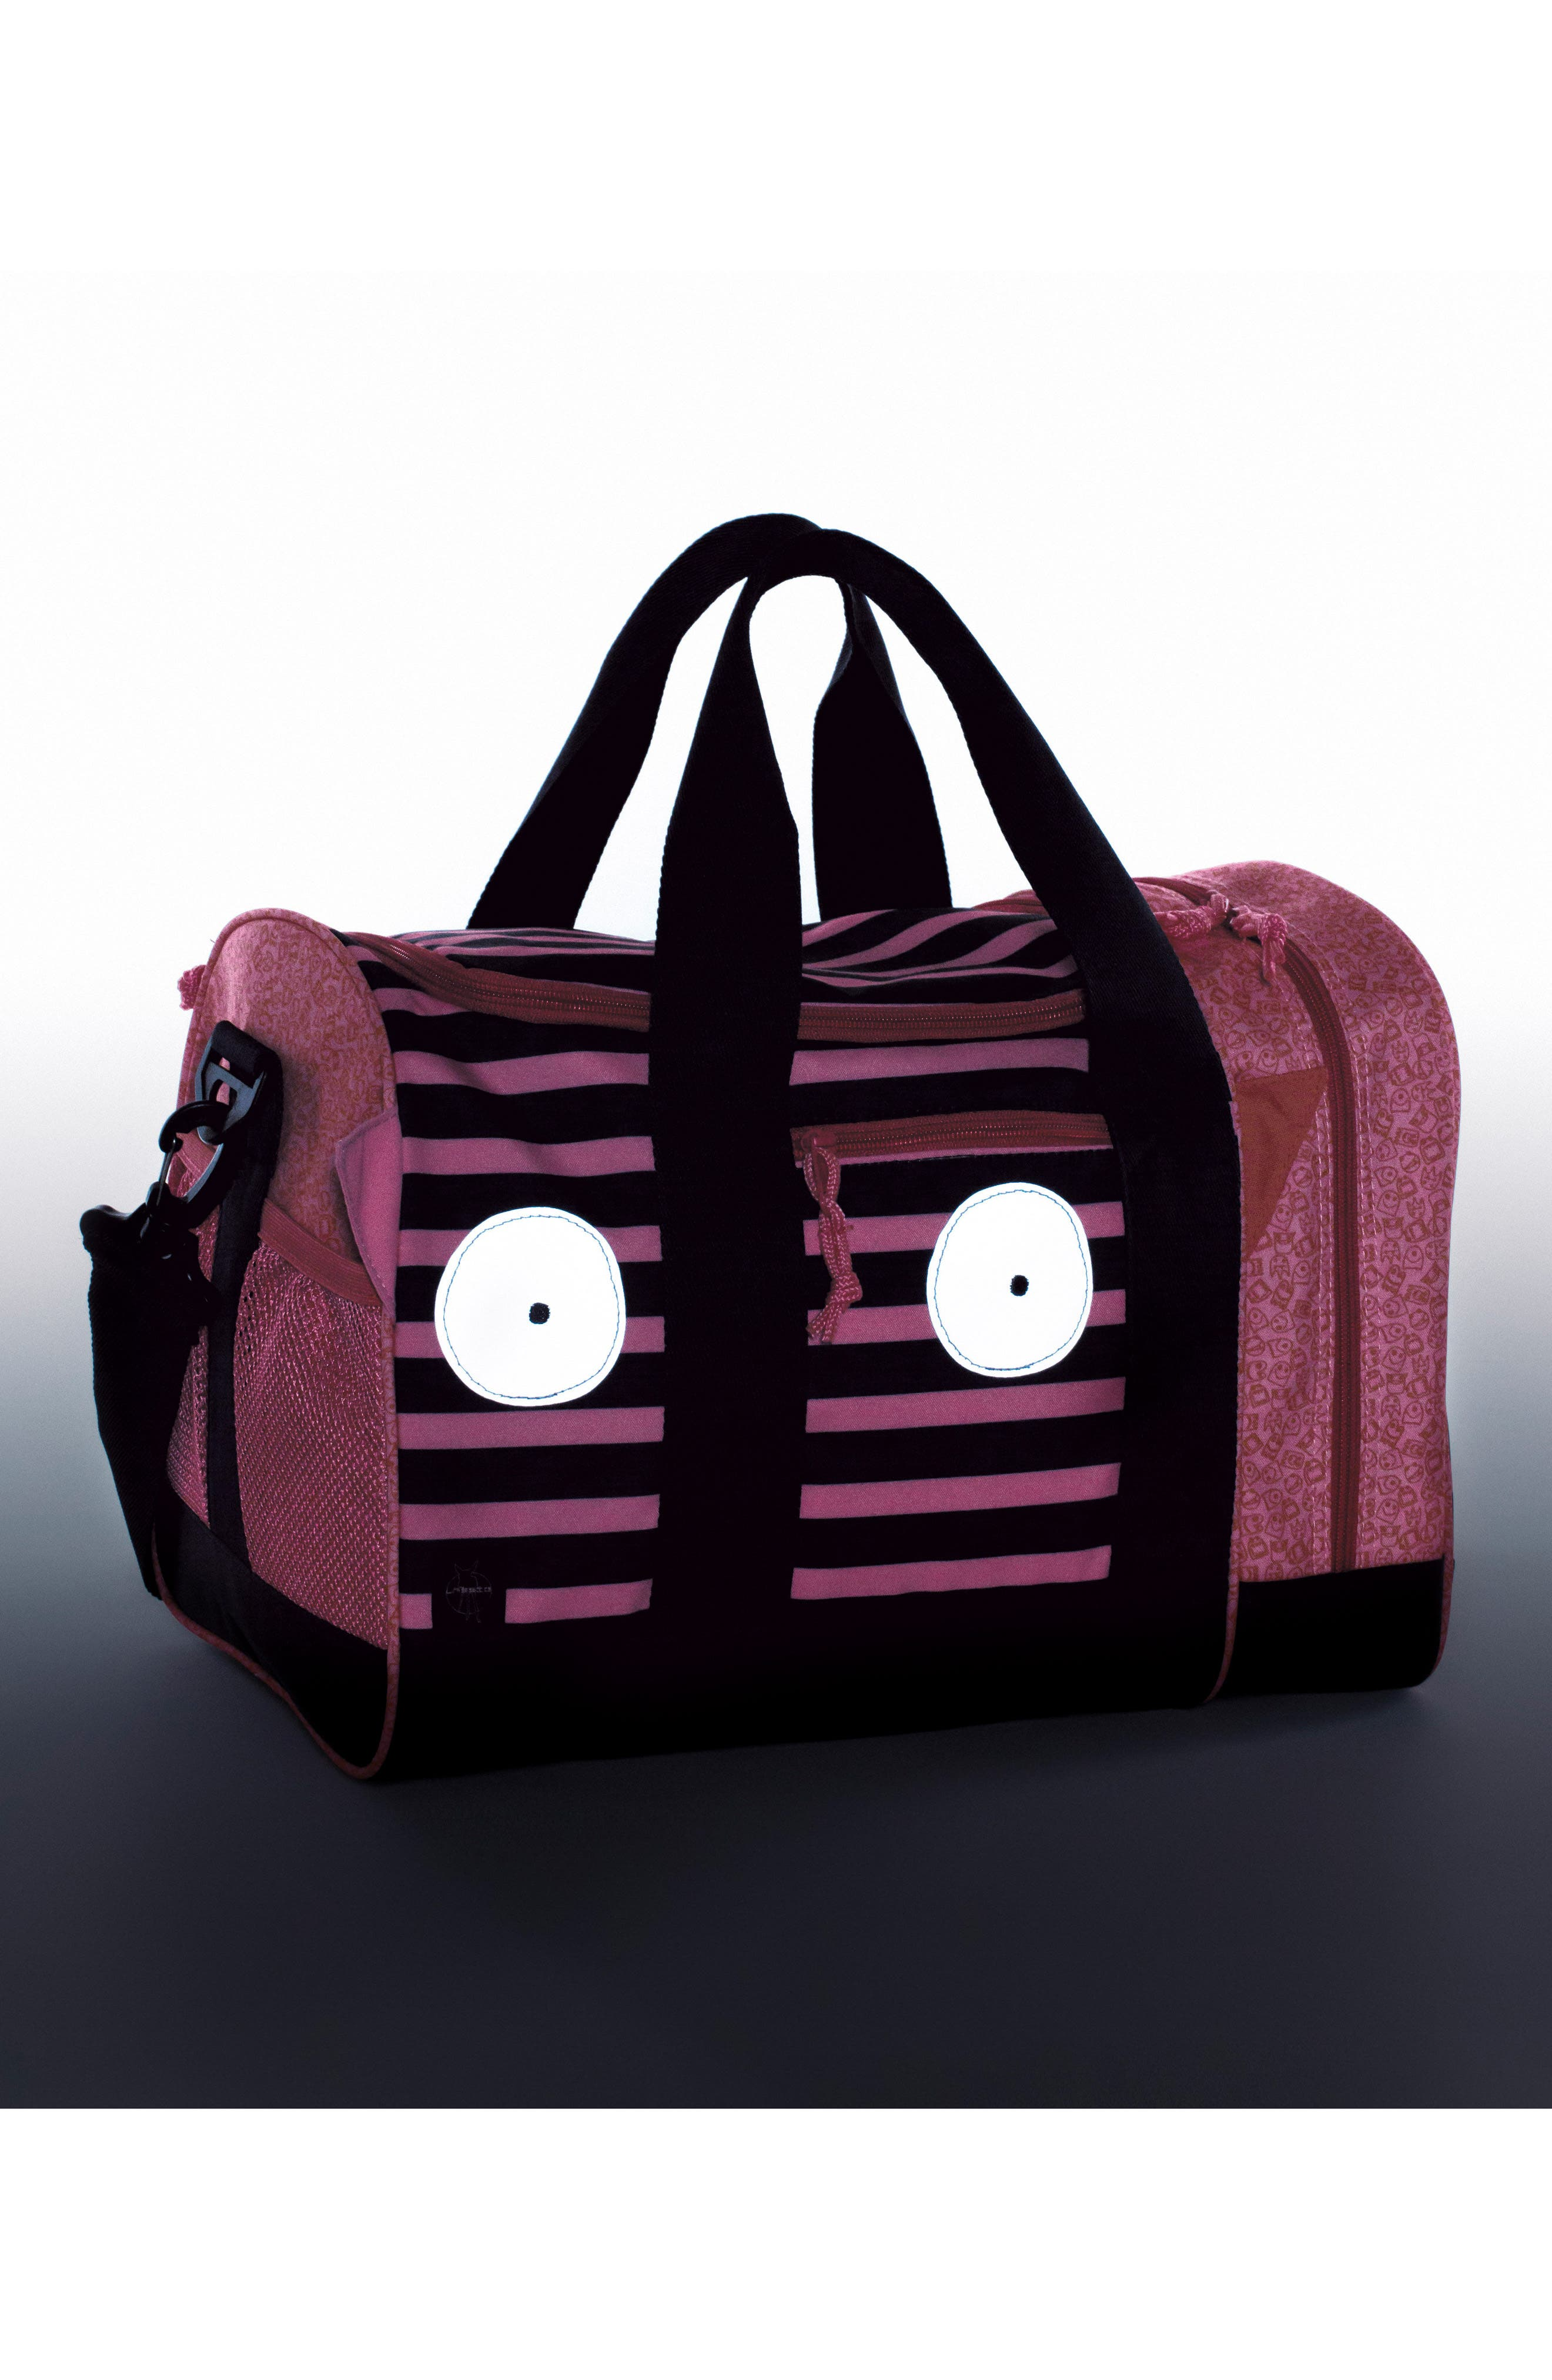 Mini Sports Bag with Glow-in-the-Dark Eyes,                             Alternate thumbnail 2, color,                             Mad Mabel